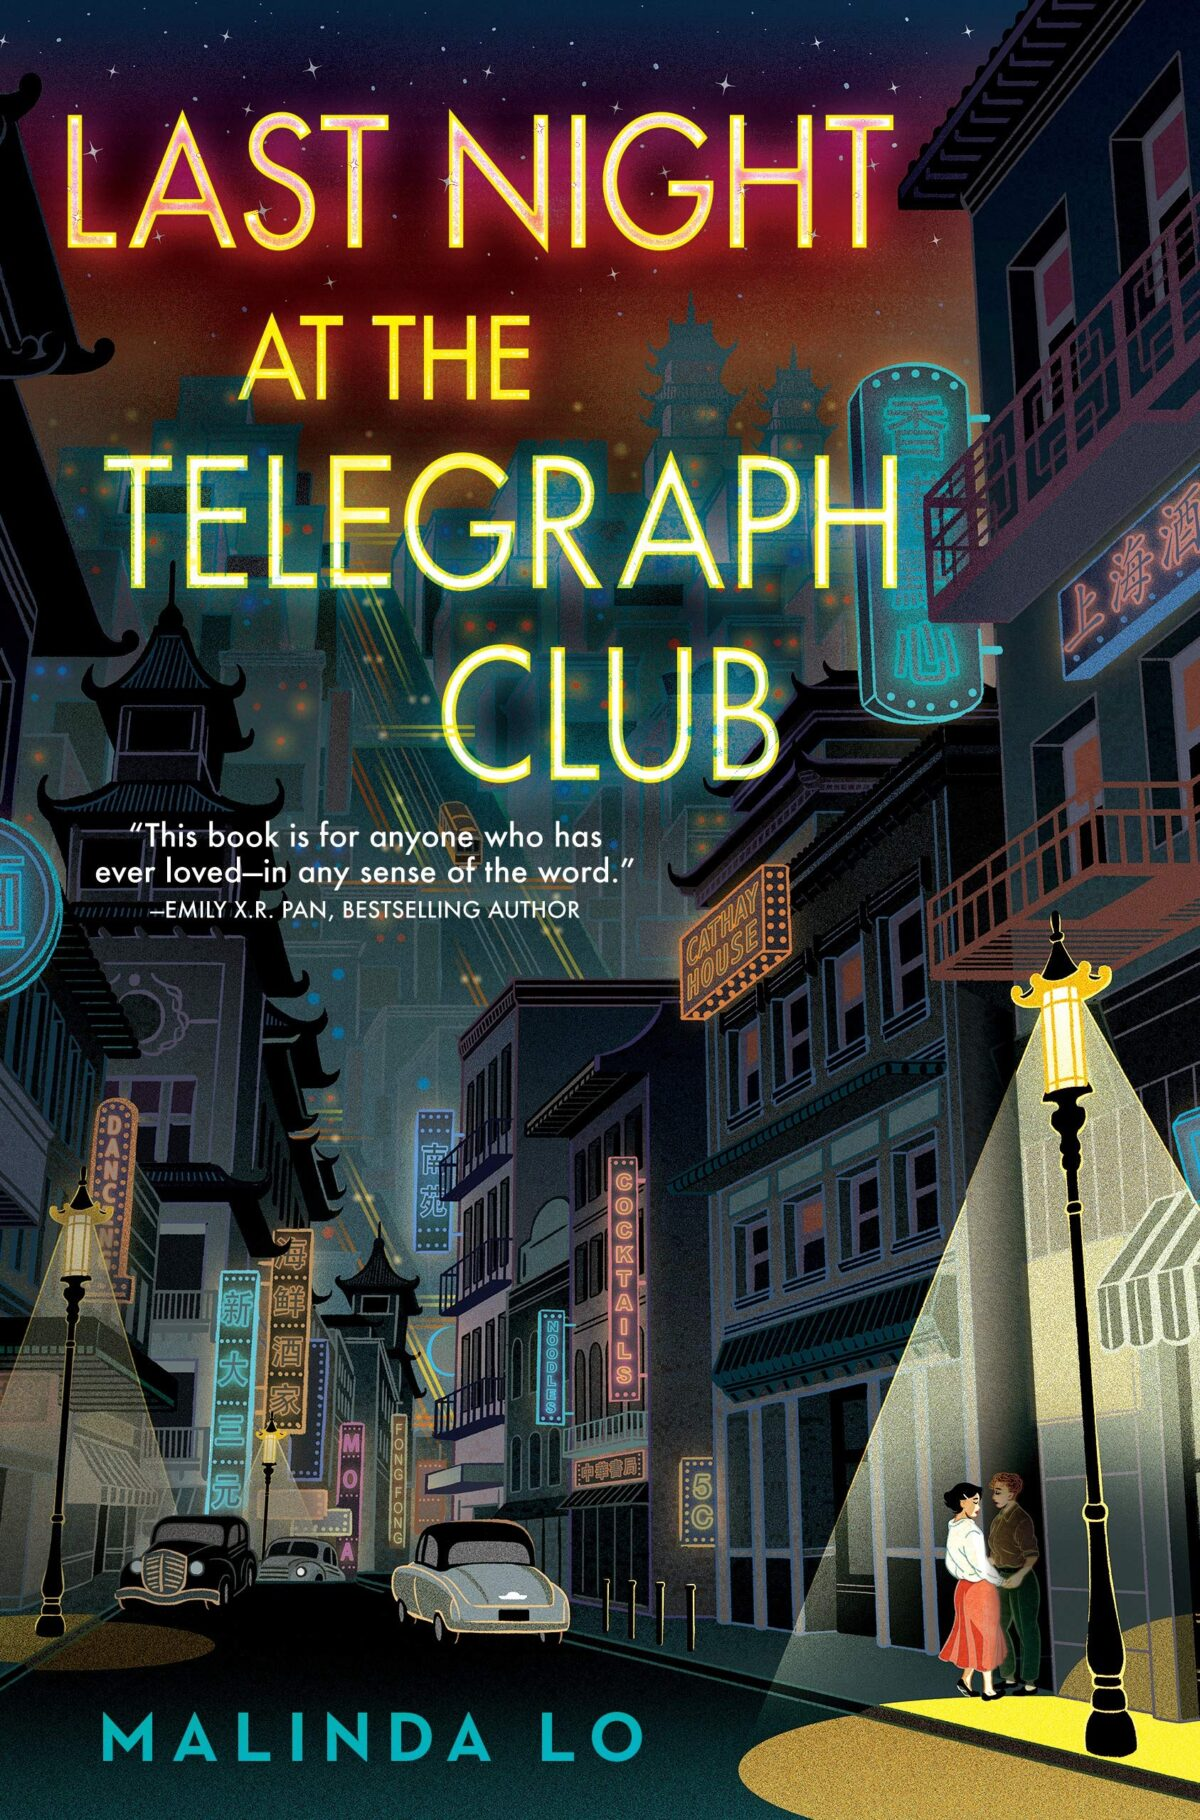 Shows the cover of Last Night At The Telegraph Club